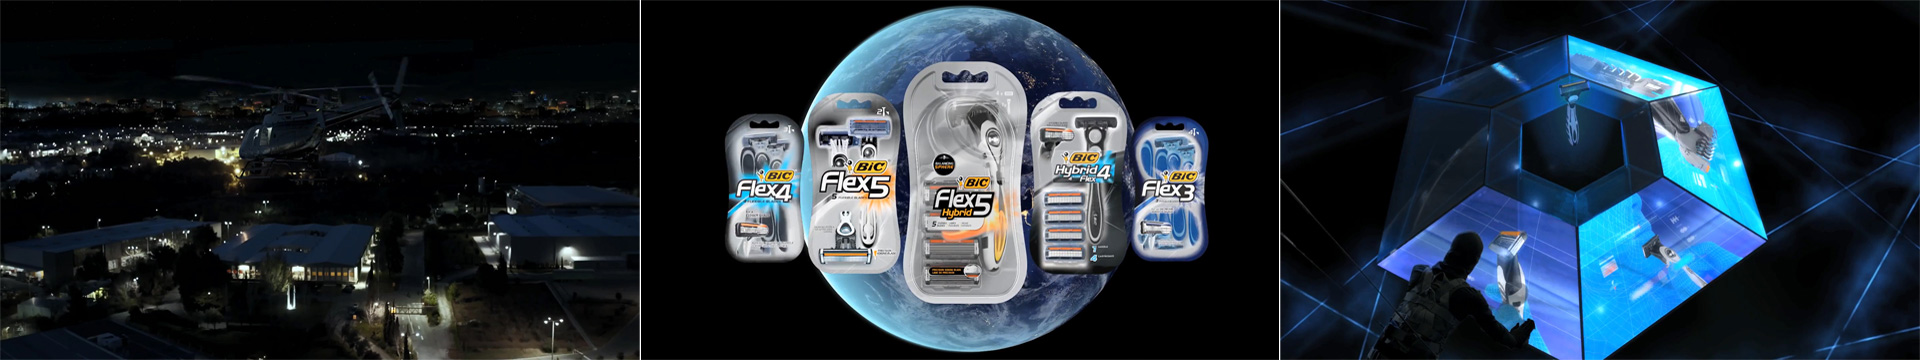 Bic Flex 5 Hybrid Spy VFX TV Commercial